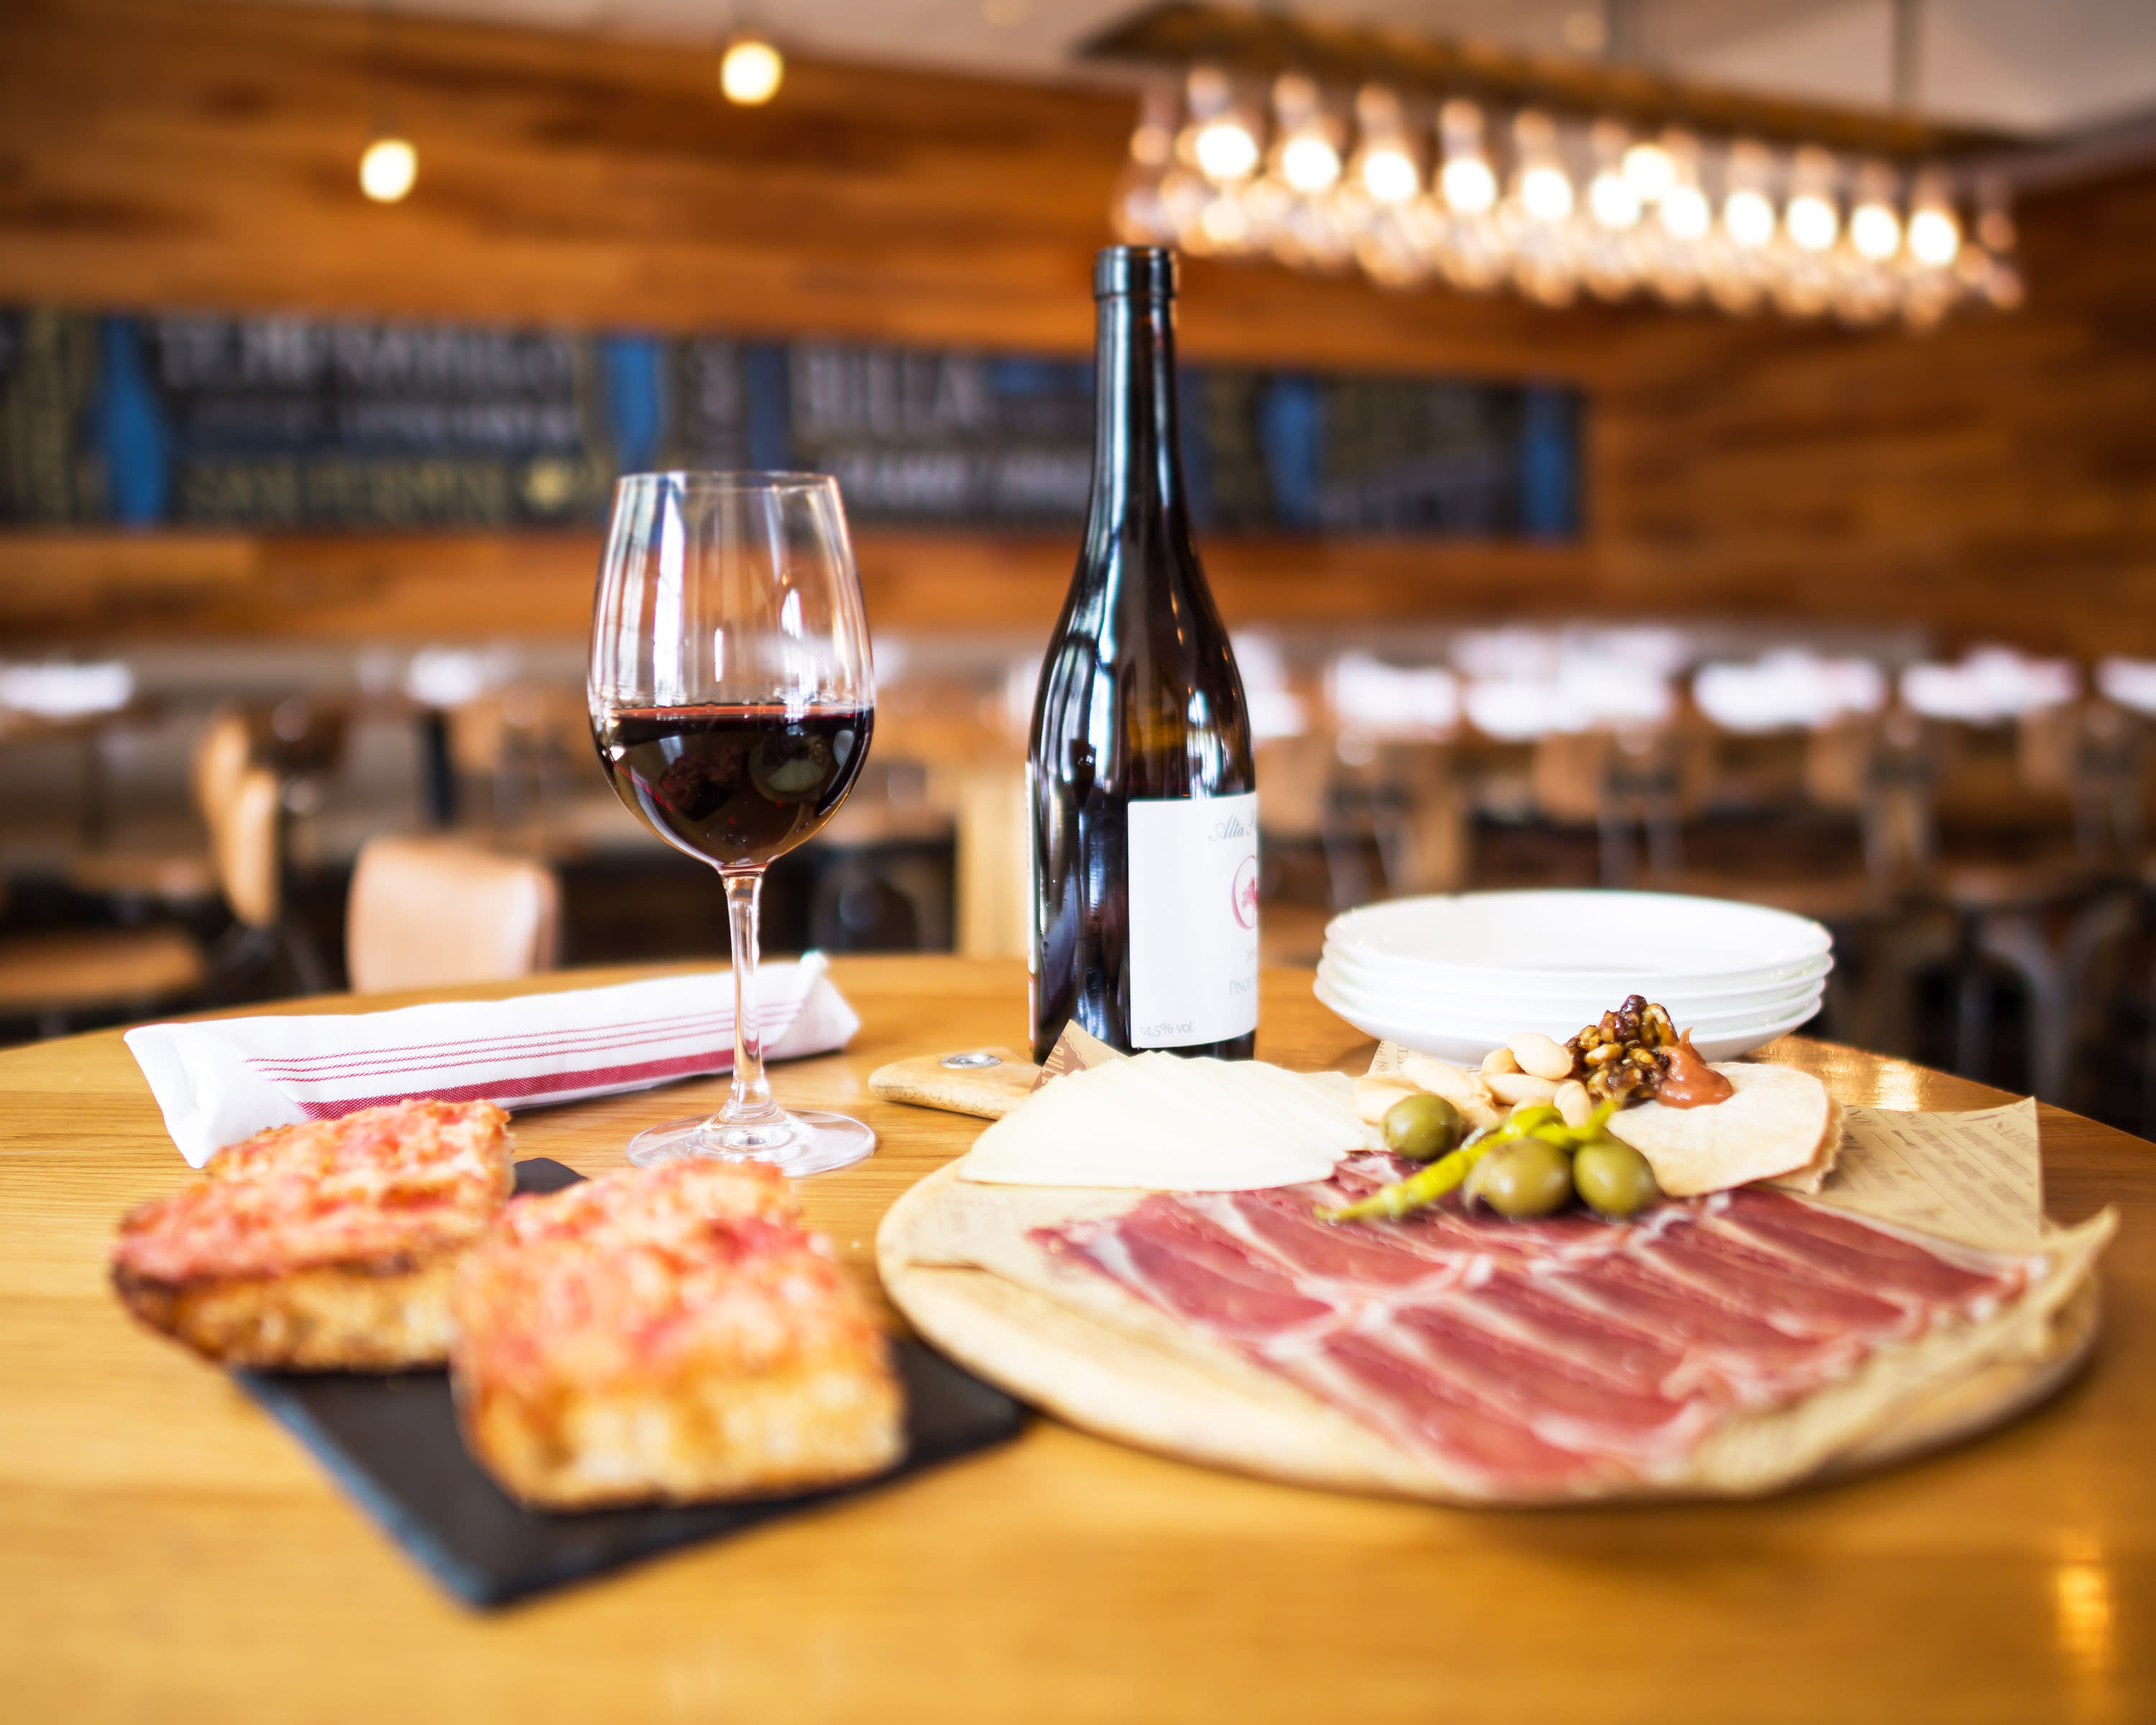 Bulla Gastrobar Wine Dinner Features Spanish-Inspired Food and Wines from Spain's Acclaimed Ribera del Duero and Rueda Regions